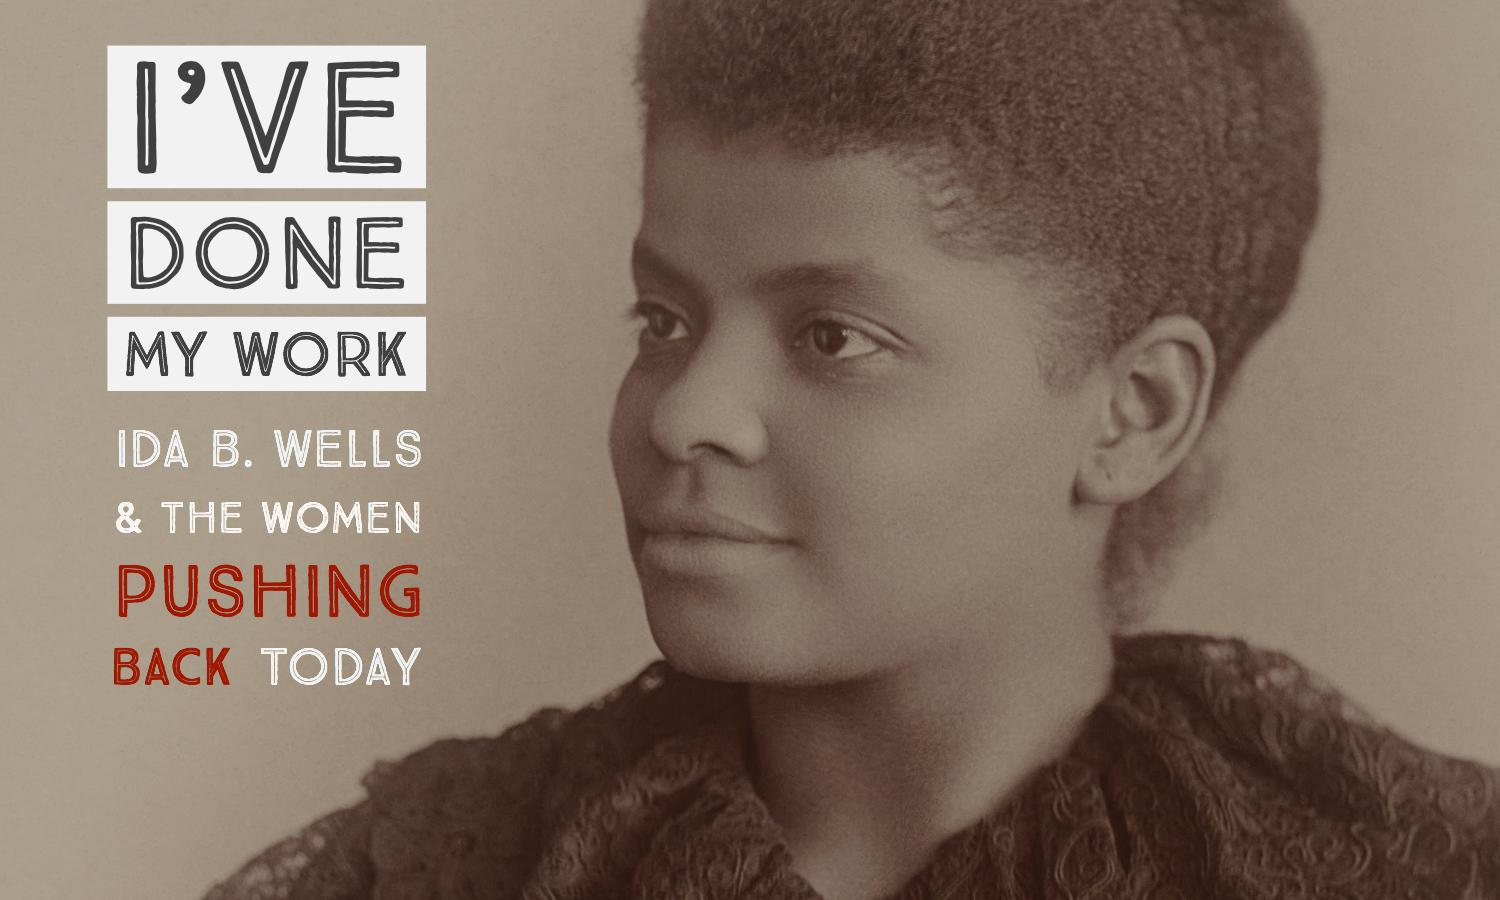 I've Done My Work: Ida B. Wells and The Women Pushing Back Today